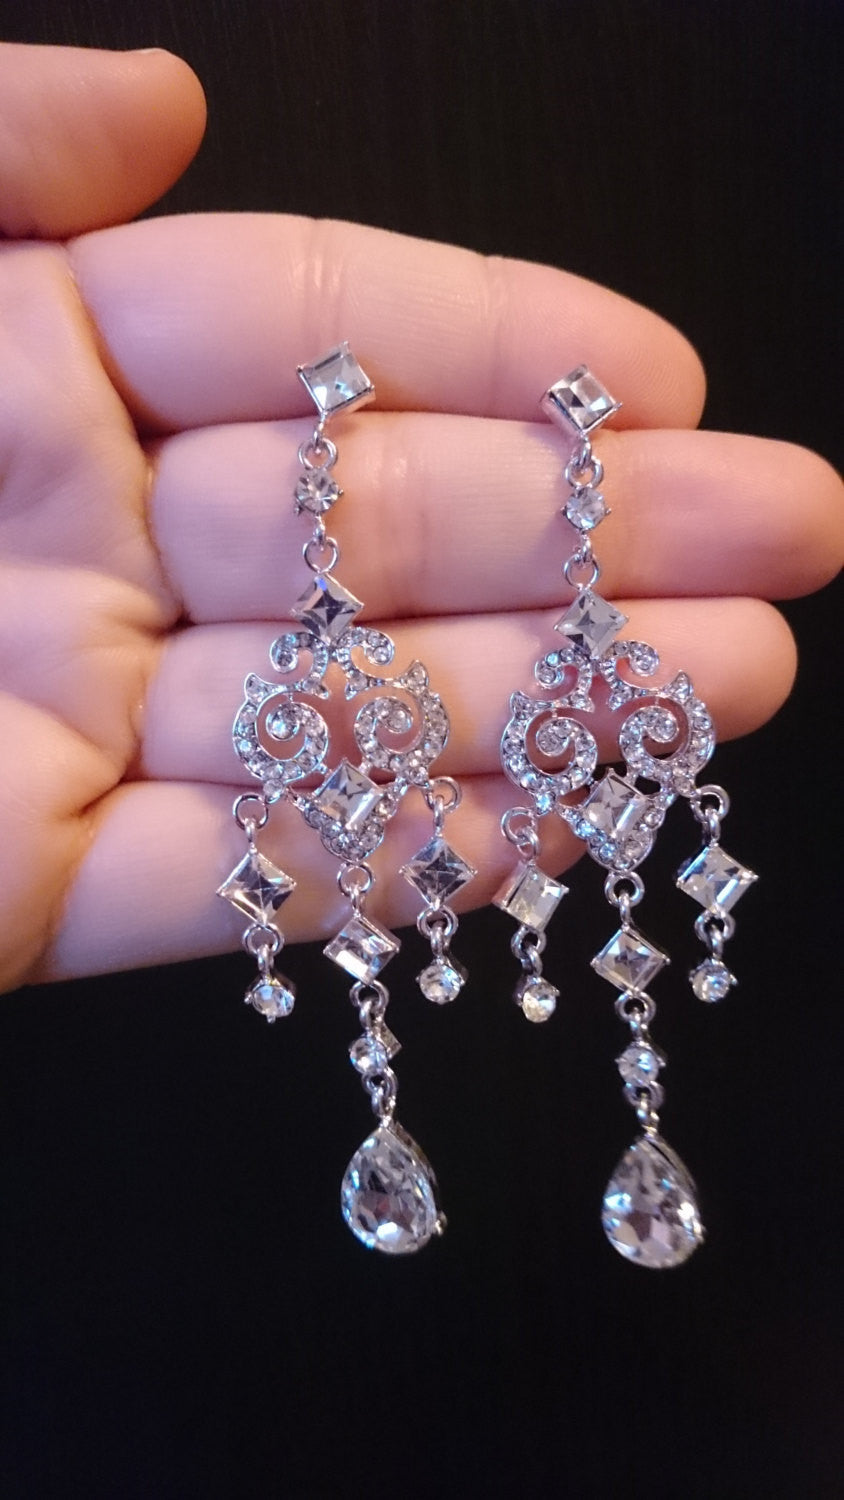 Sale 50% off, Chandelier Earrings, Crystal earrings, Long Earrings, Crystal jewelry, bridal Earrings Antique Style